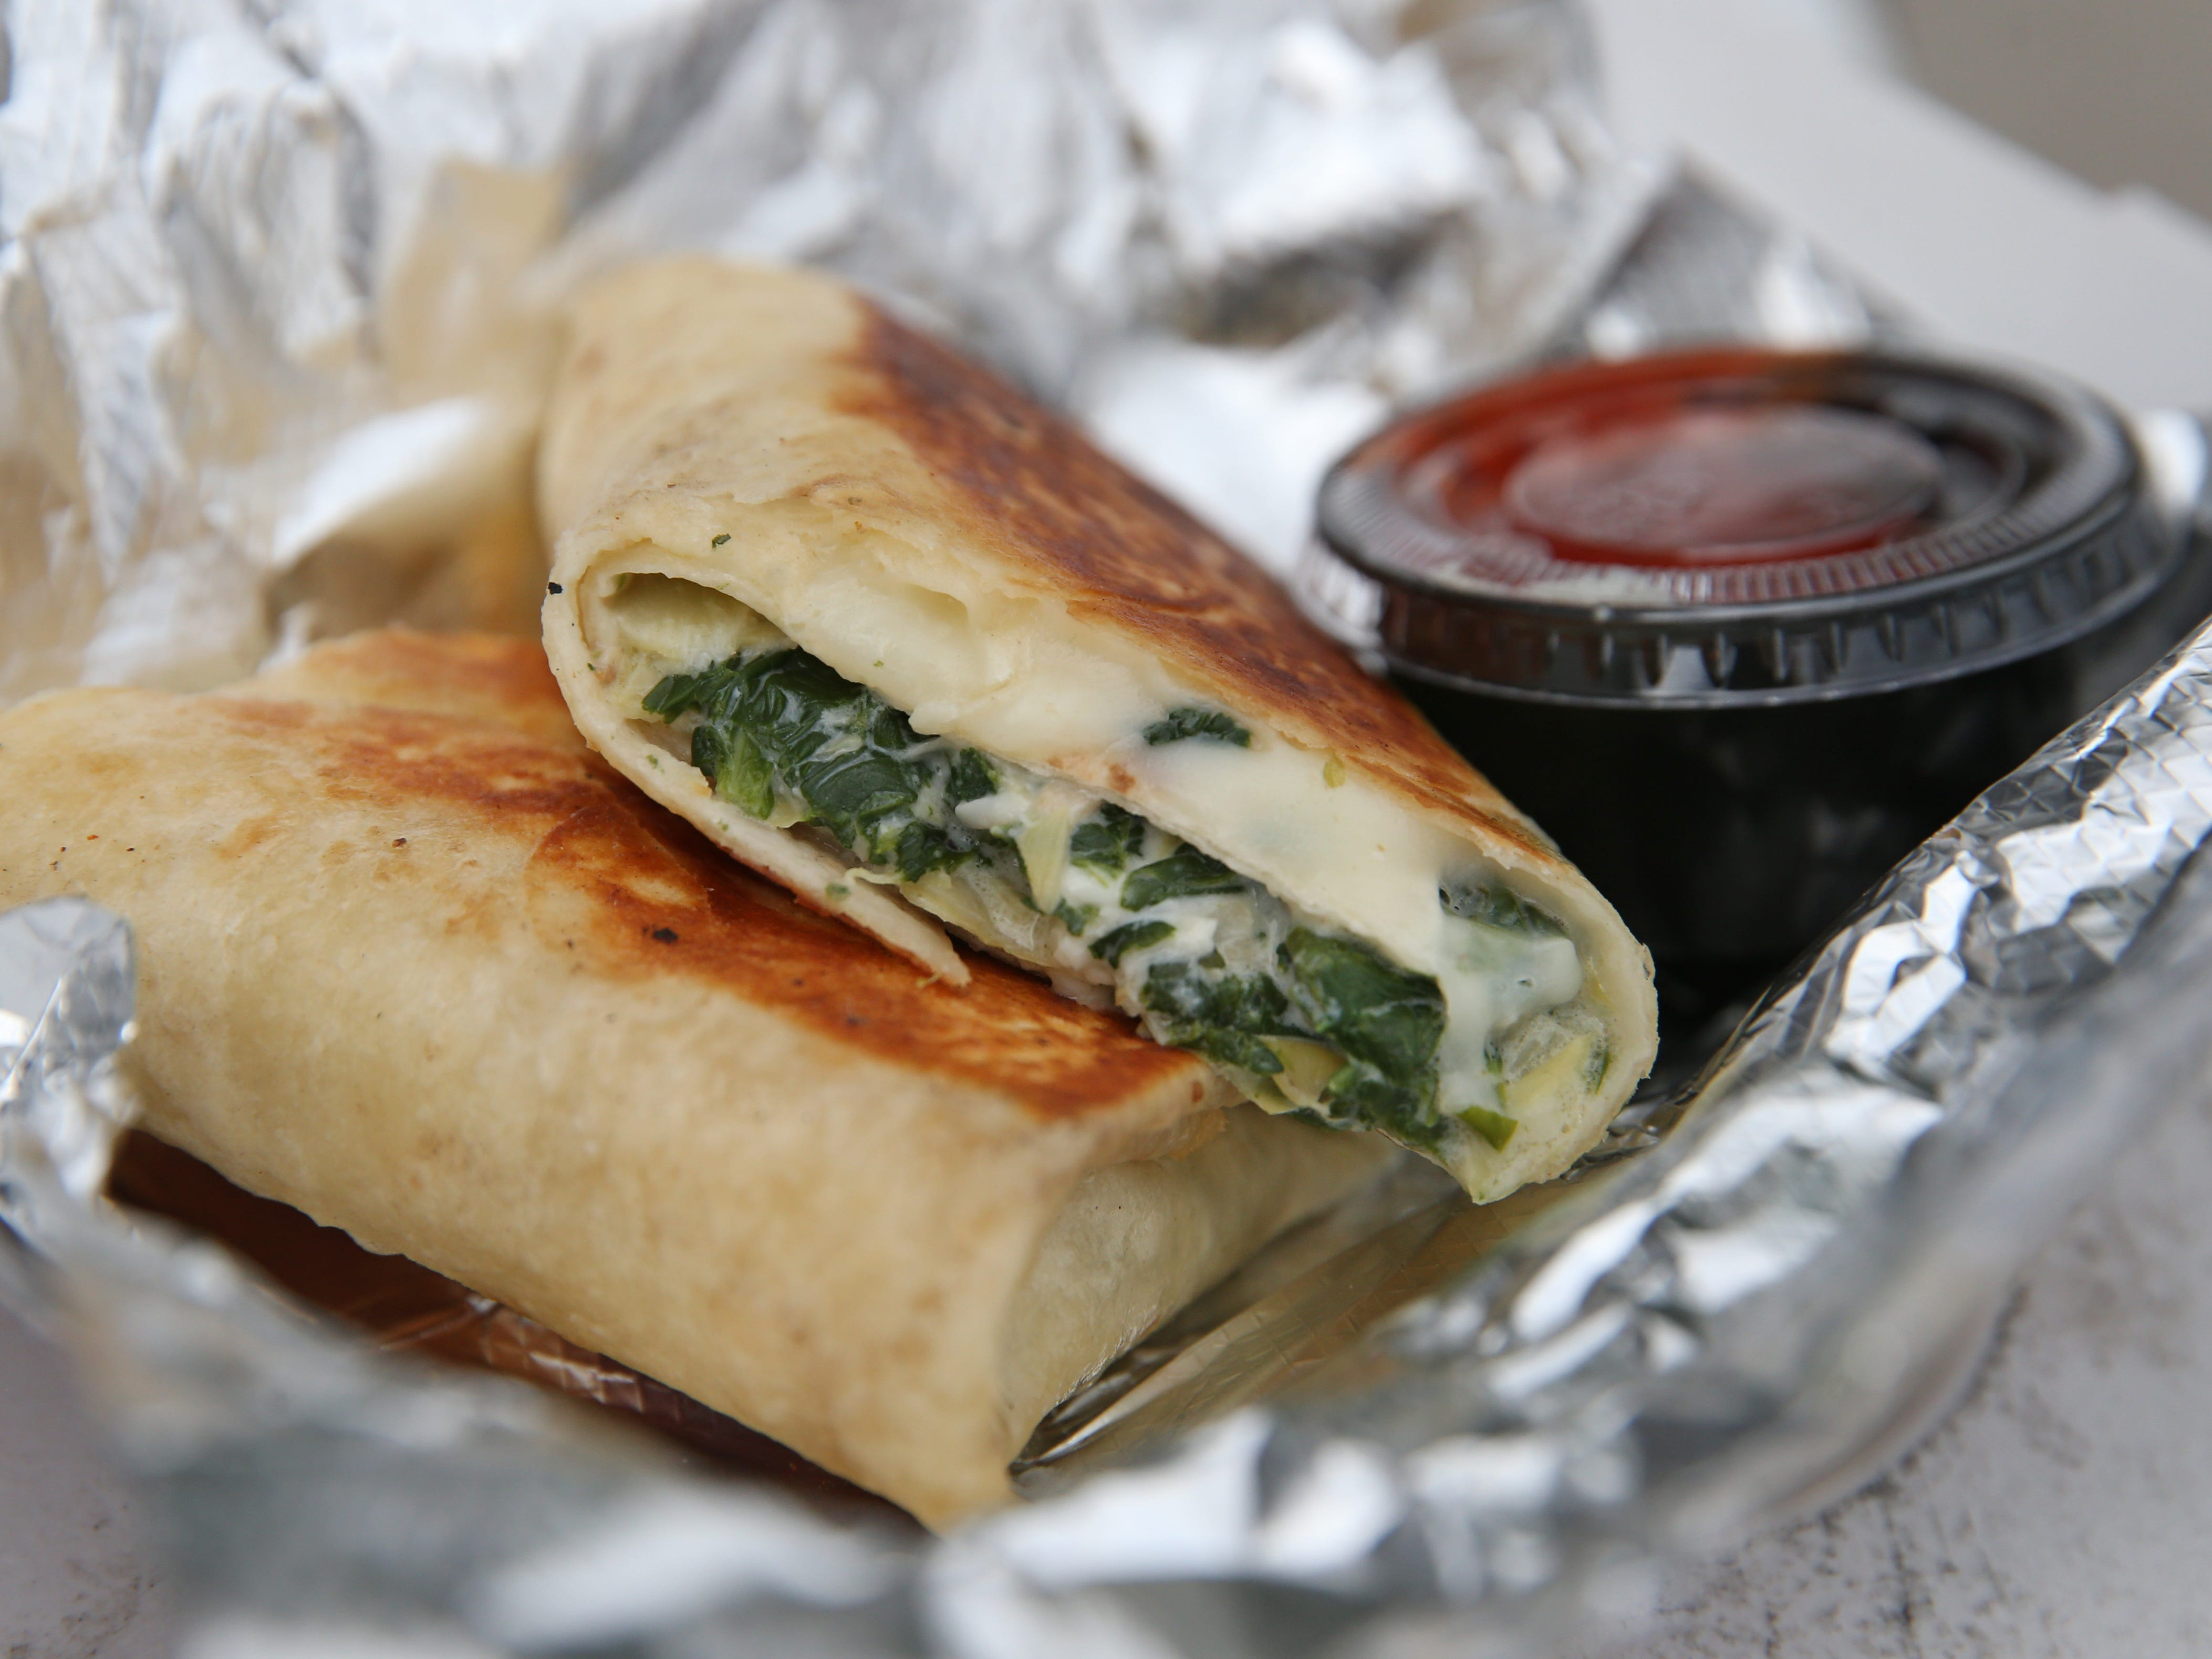 The Spin Art Burrito, spinach and artichoke dip wrapped in a tortilla and cooked until golden, is served from the Twist This food truck.